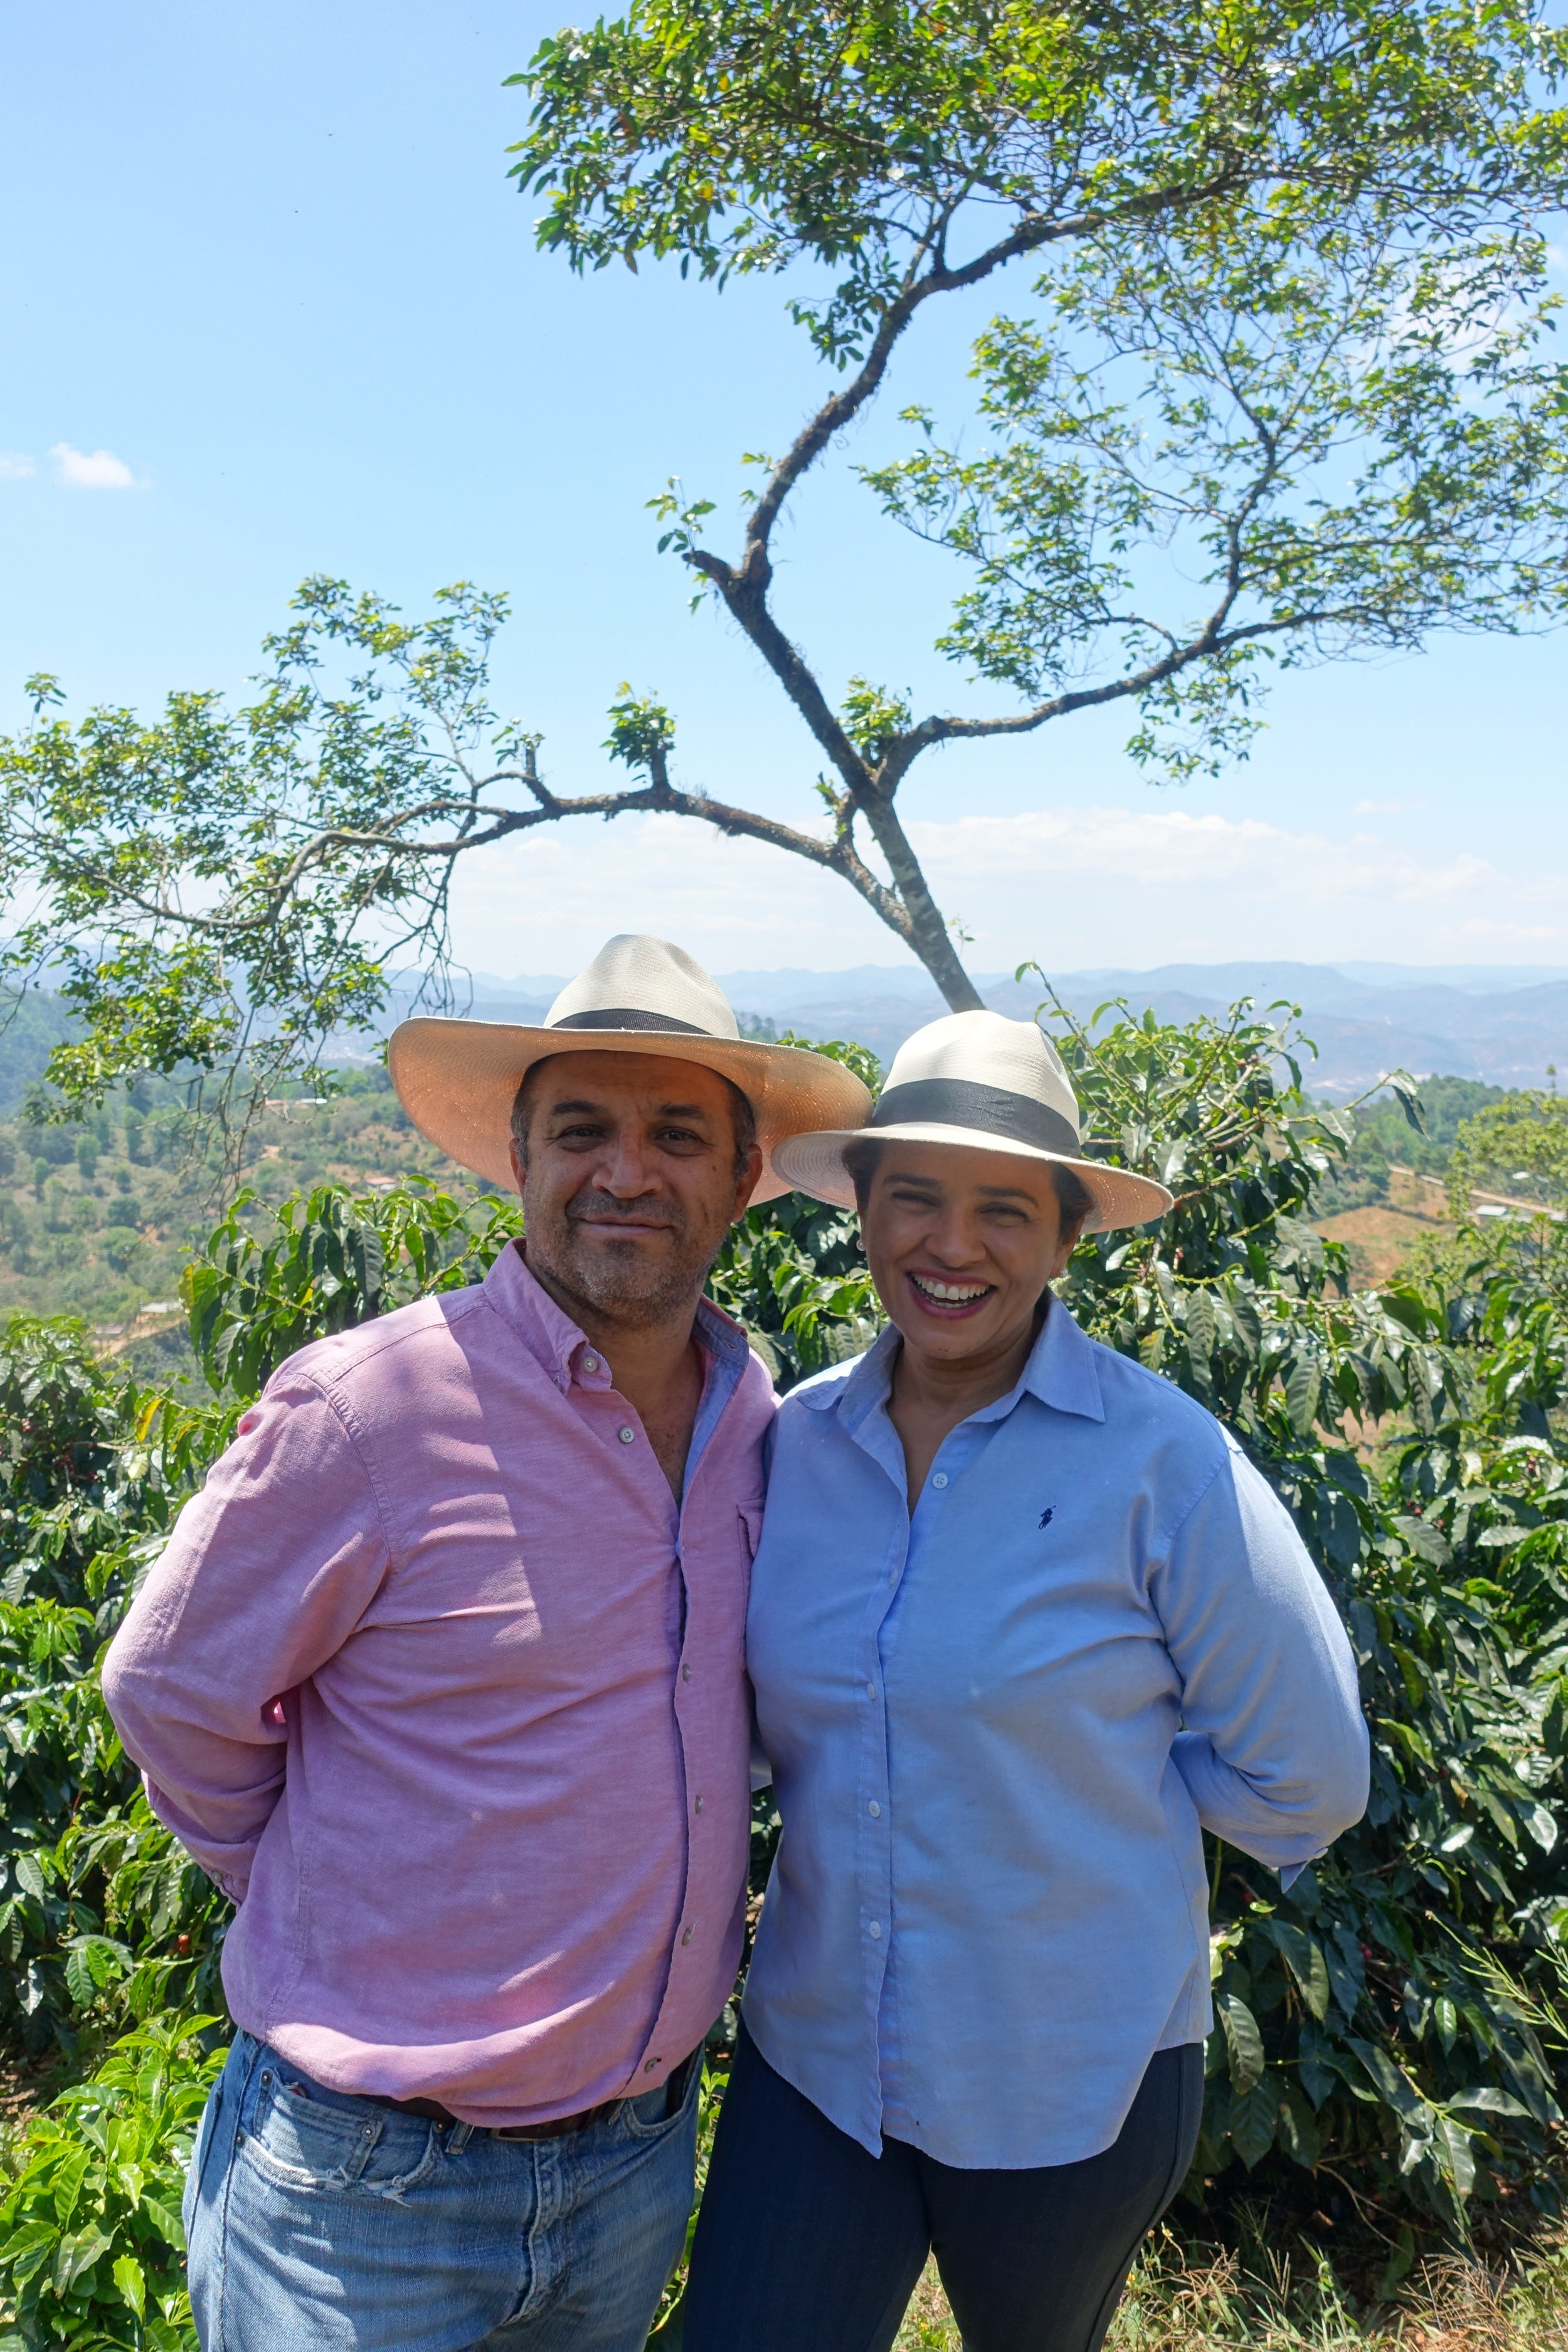 Moises and Marysabel on their farm, photo provided thanks to Kyle at Osito importers